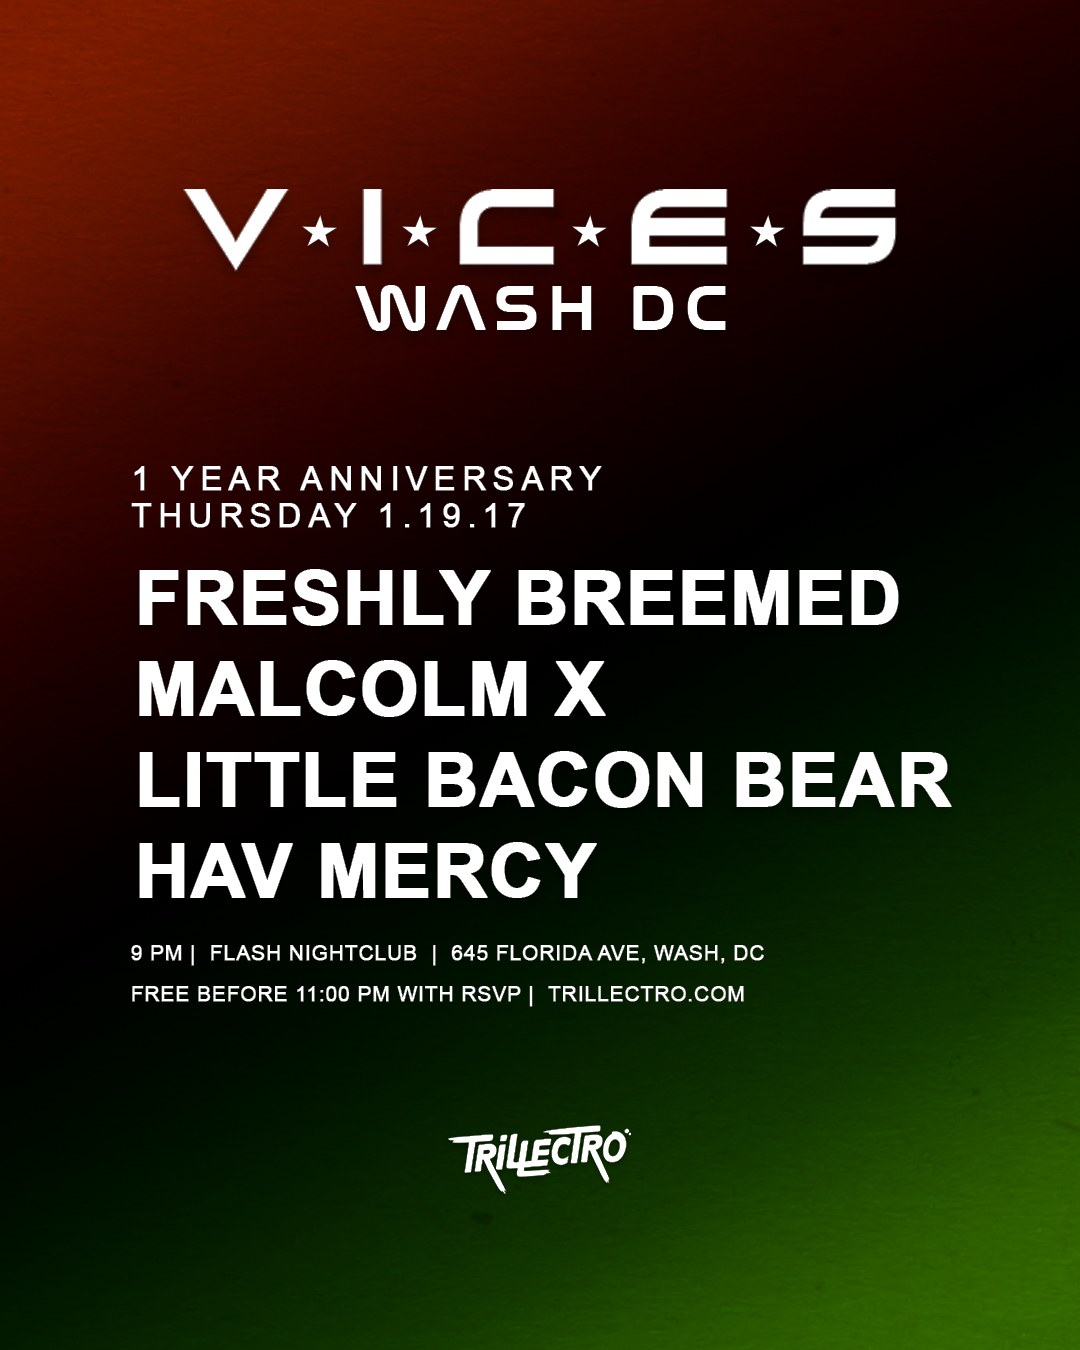 Vices DC: 1 Year Anniversary event thumbnail